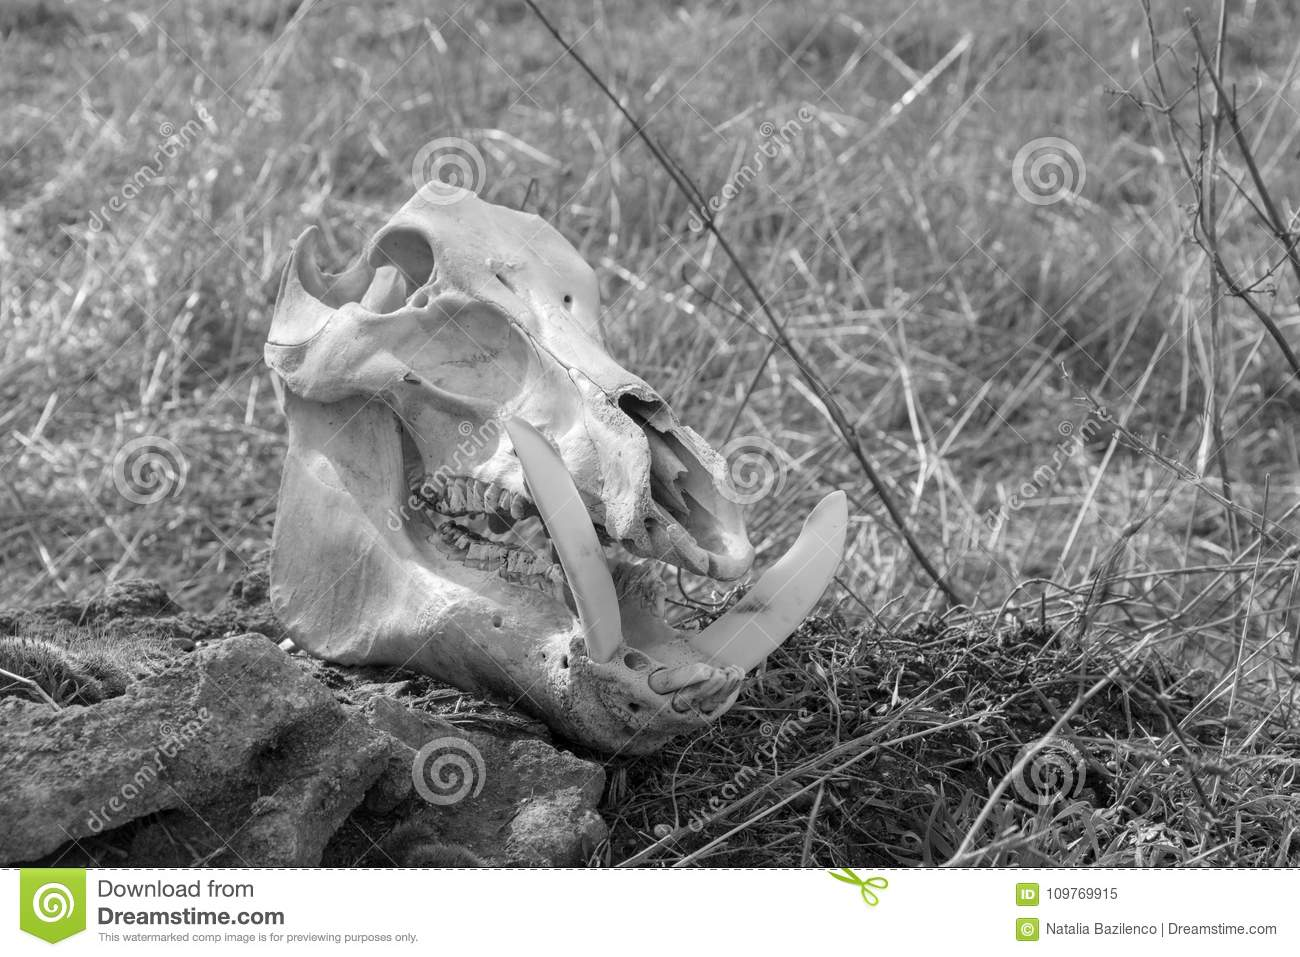 Skull Of A Wild Boar On A Dry Grass Background Stock Image - Image ...